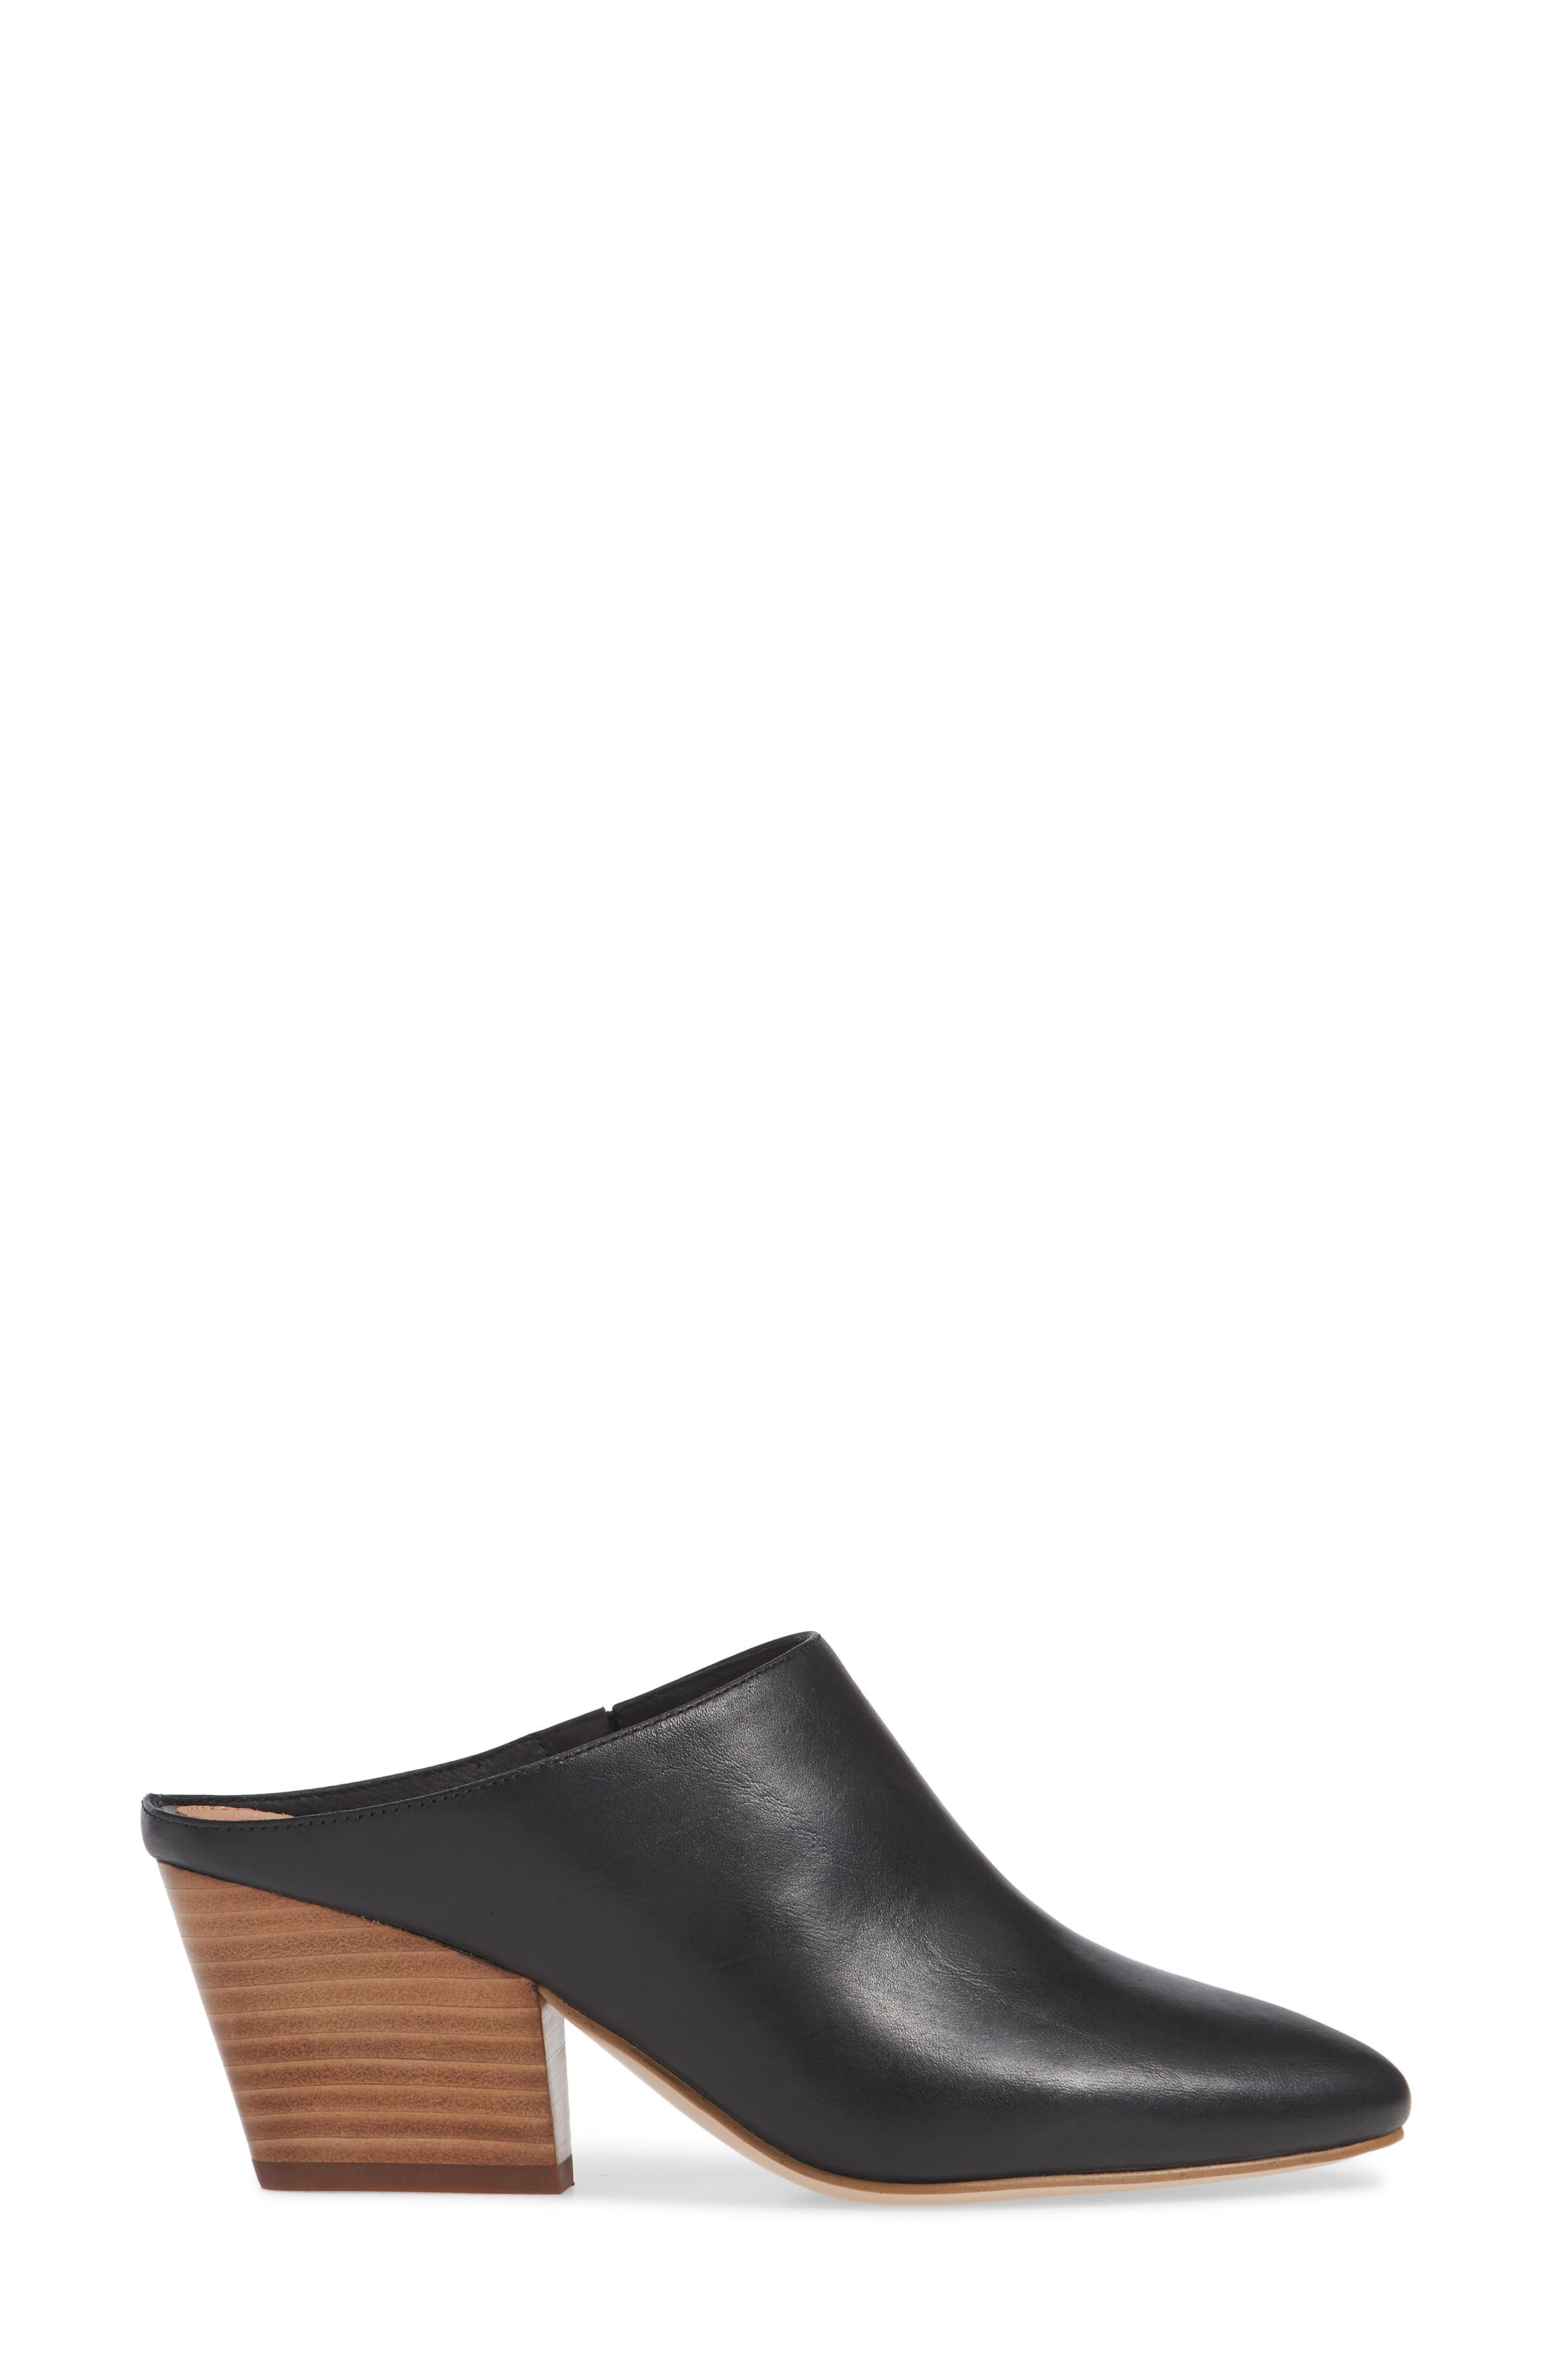 HALOGEN<SUP>®</SUP>, Brielle Mule, Alternate thumbnail 3, color, BLACK LEATHER